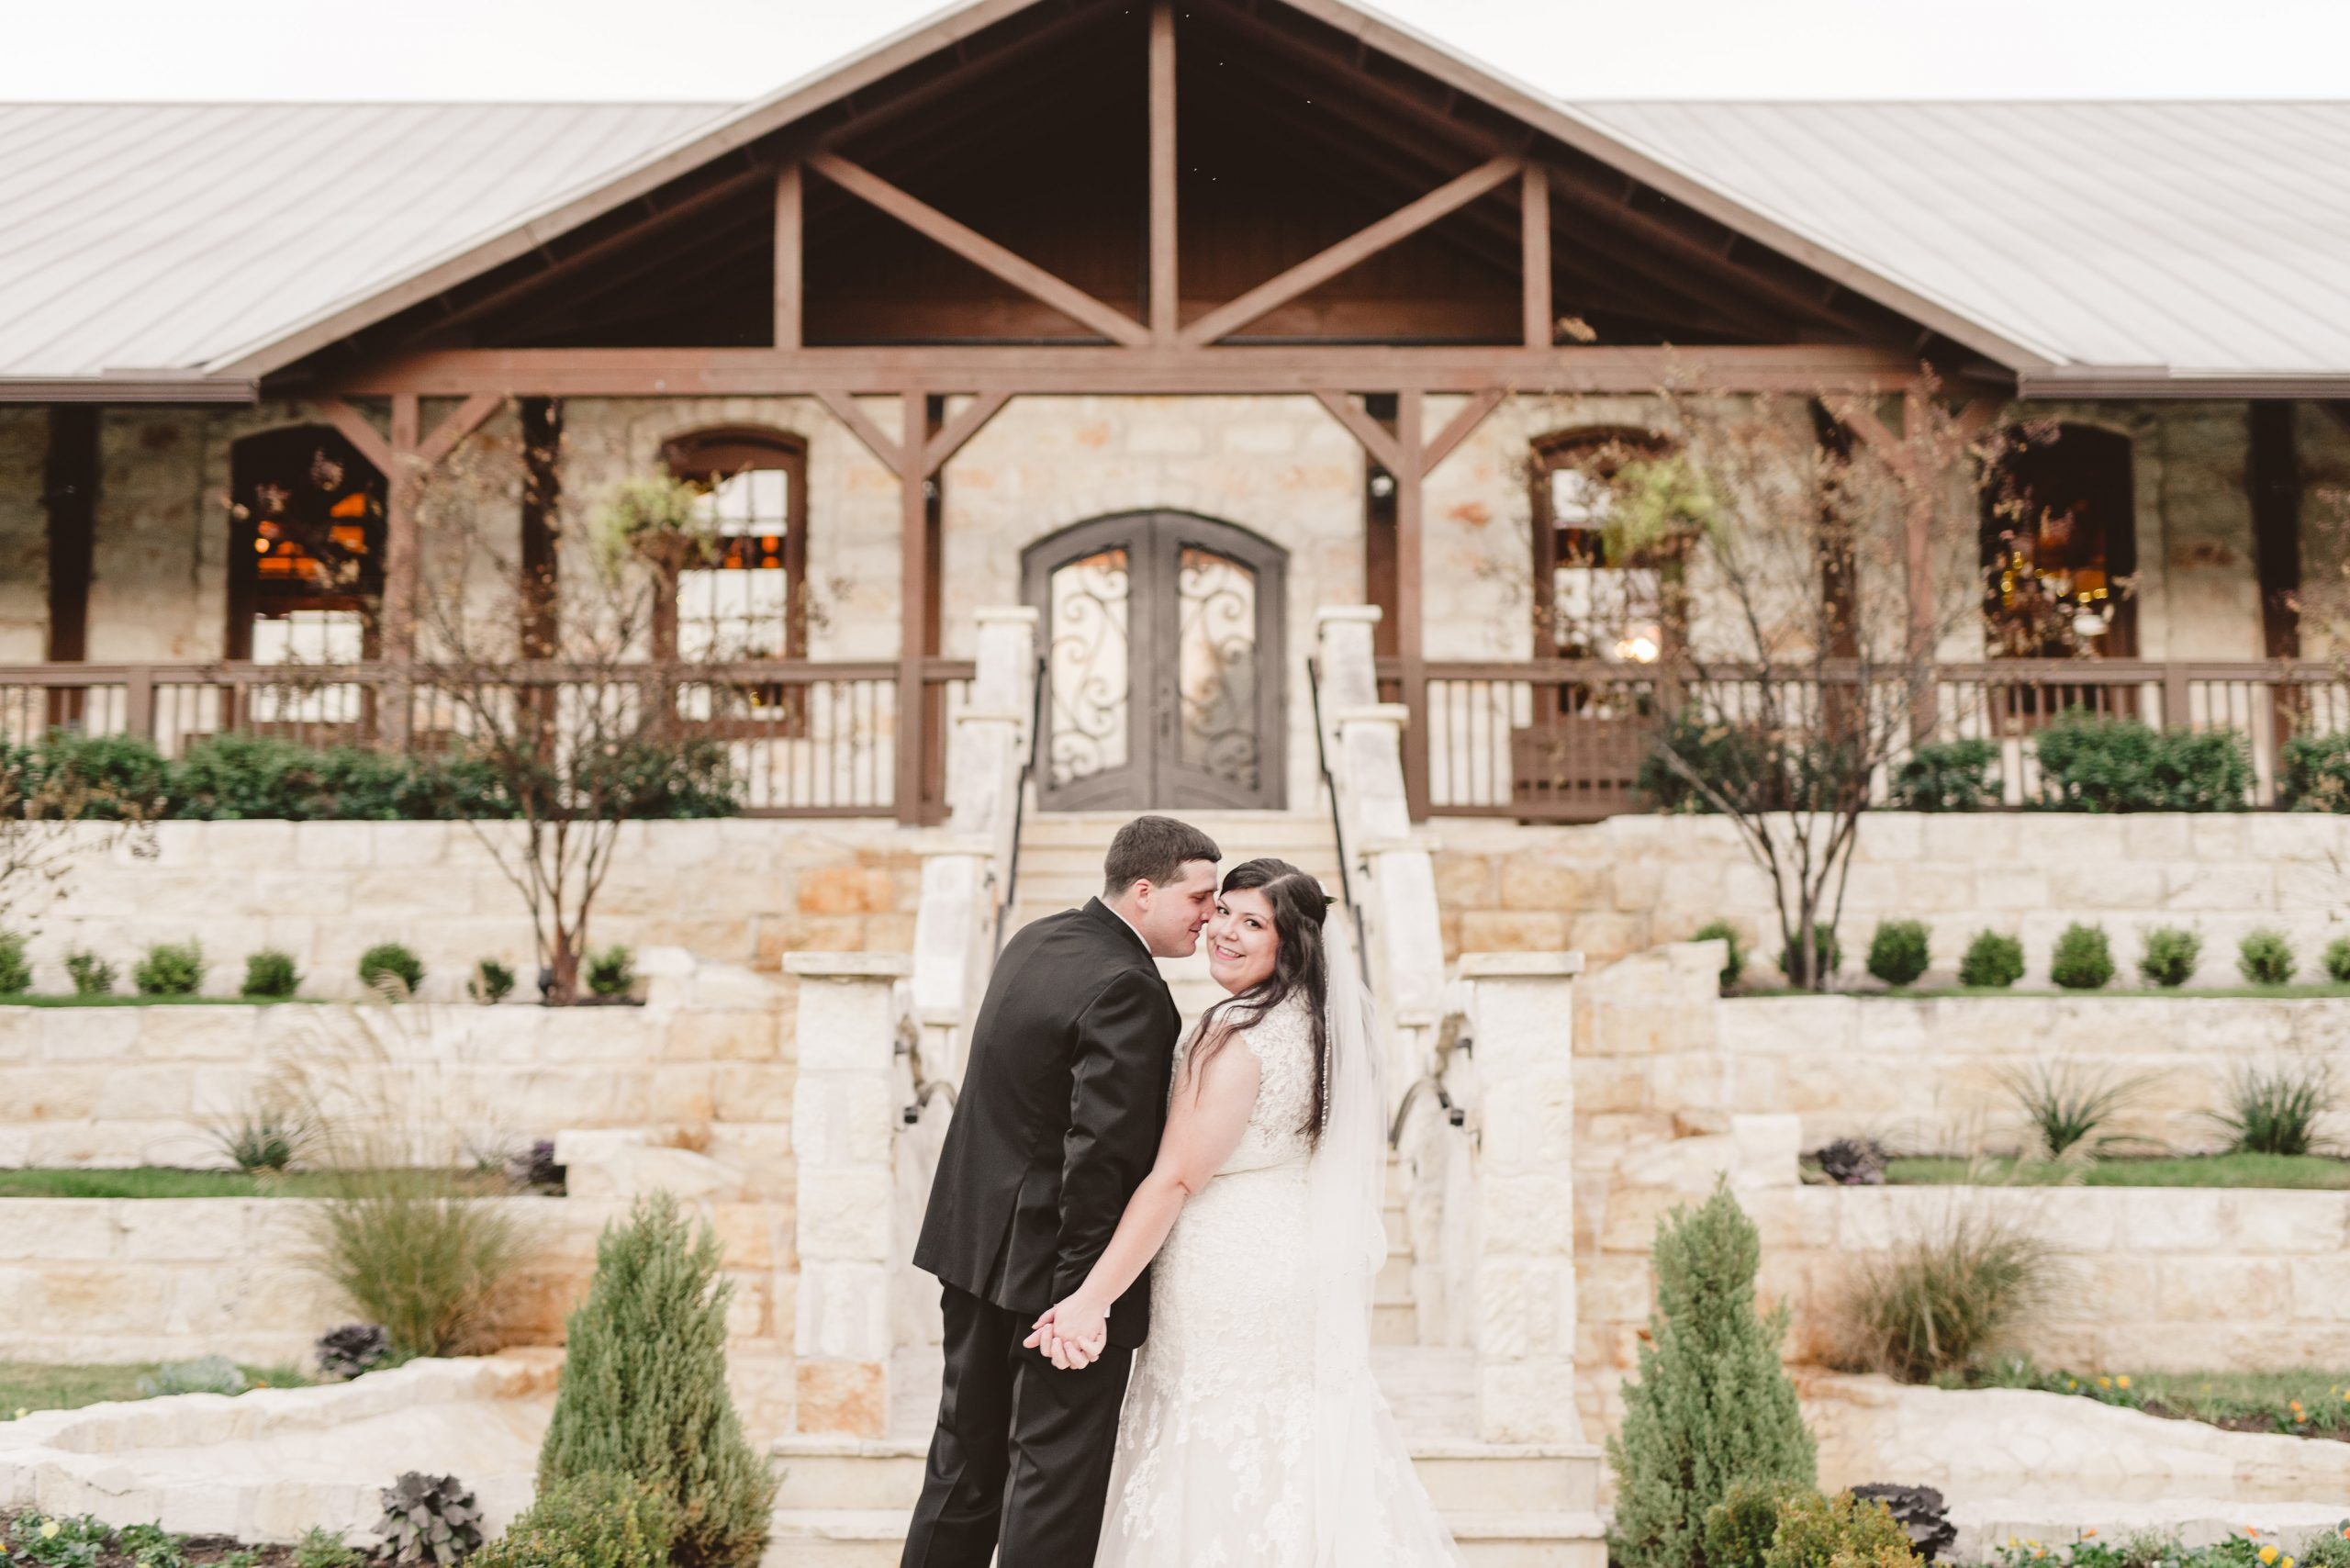 View More: http://lindsaydavenportphotography.pass.us/lexie-jake-wed-blog-print